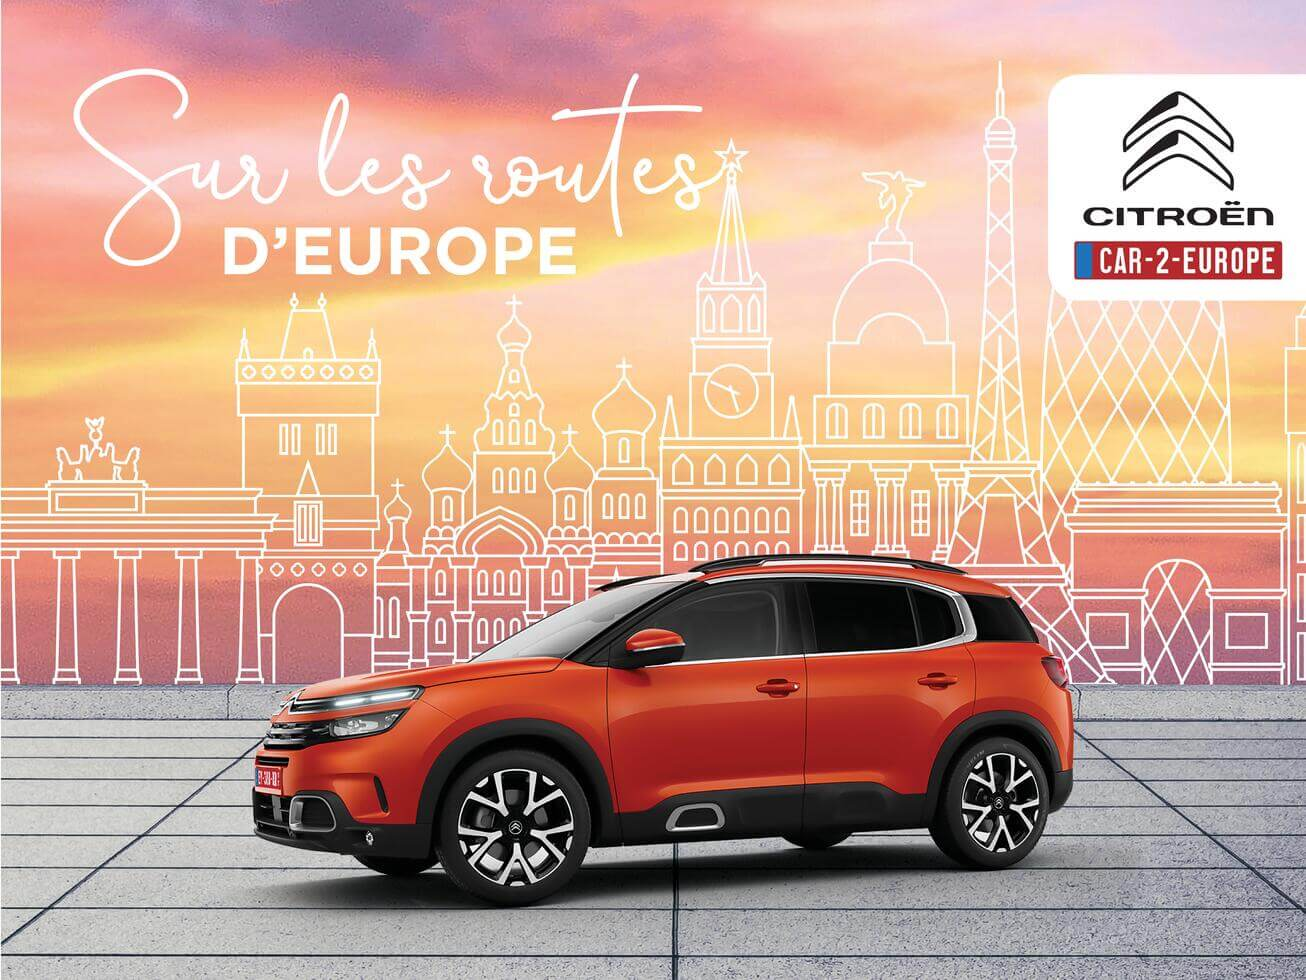 Sur les routes d' Europe Citroën